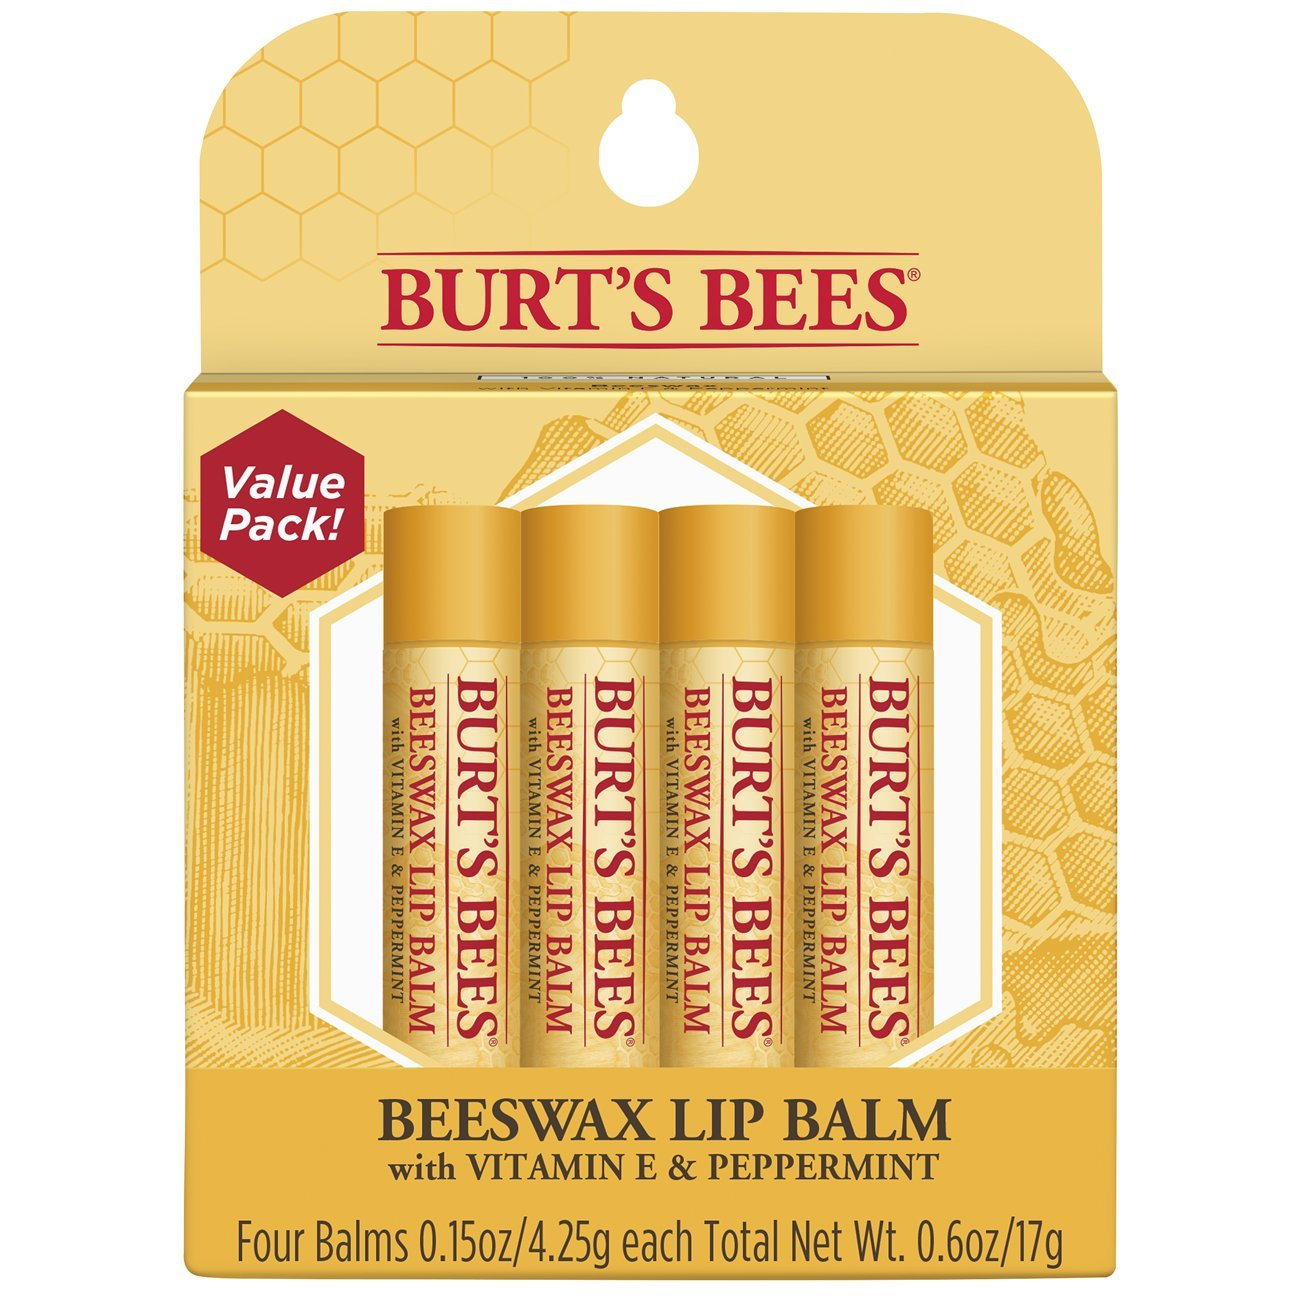 Burt's Bees 100% Natural Moisturizing Lip Balm, Original Beeswax with Vitamin E & Peppermint Oil - 4 Tubes